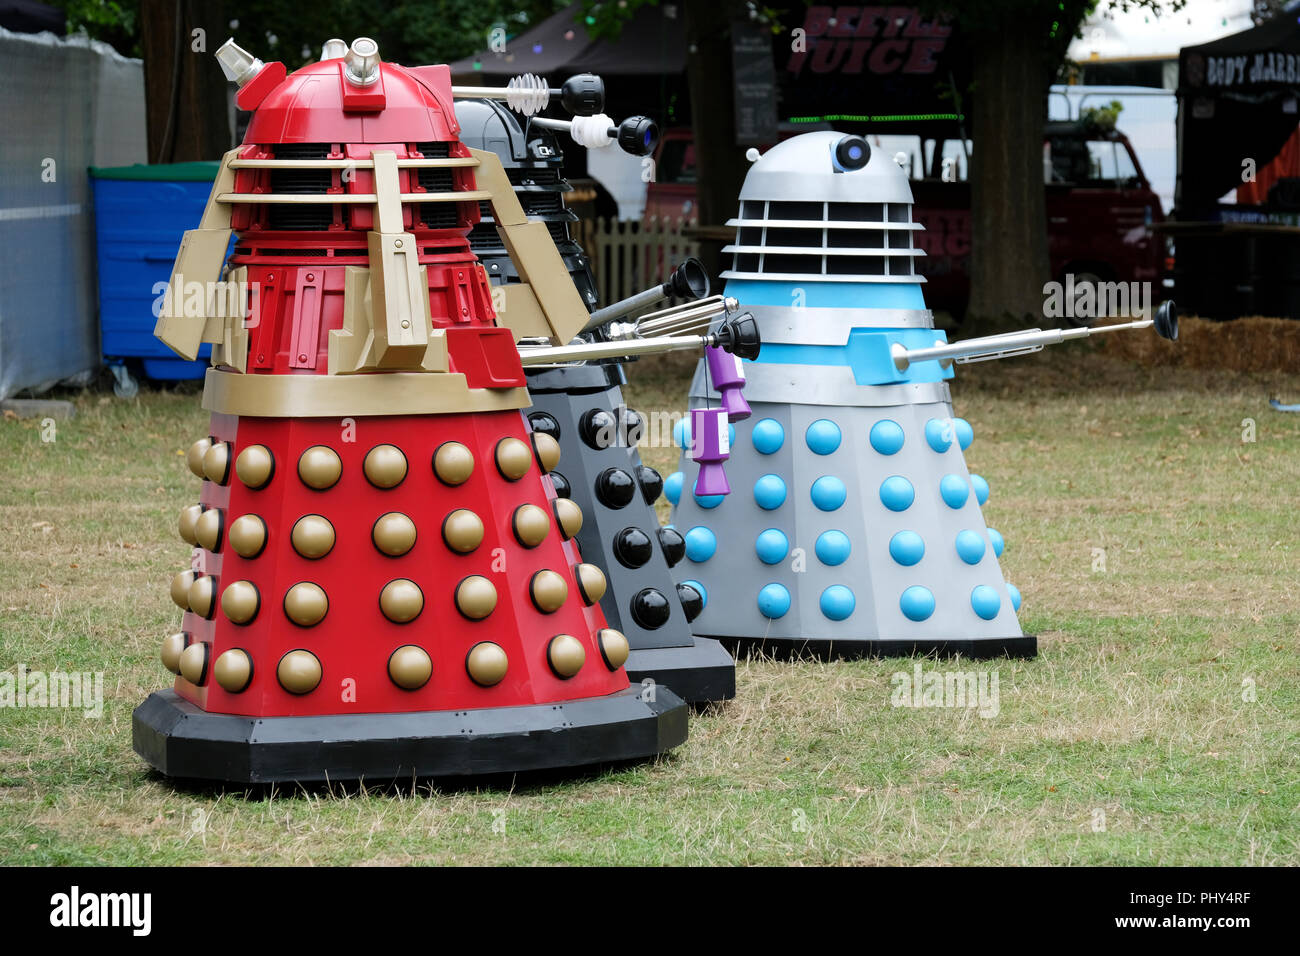 Daleks, a fictional extraterrestrial race of mutants, who star in the science fiction television programme Doctor Who at the Weyfest Music Festival, T - Stock Image